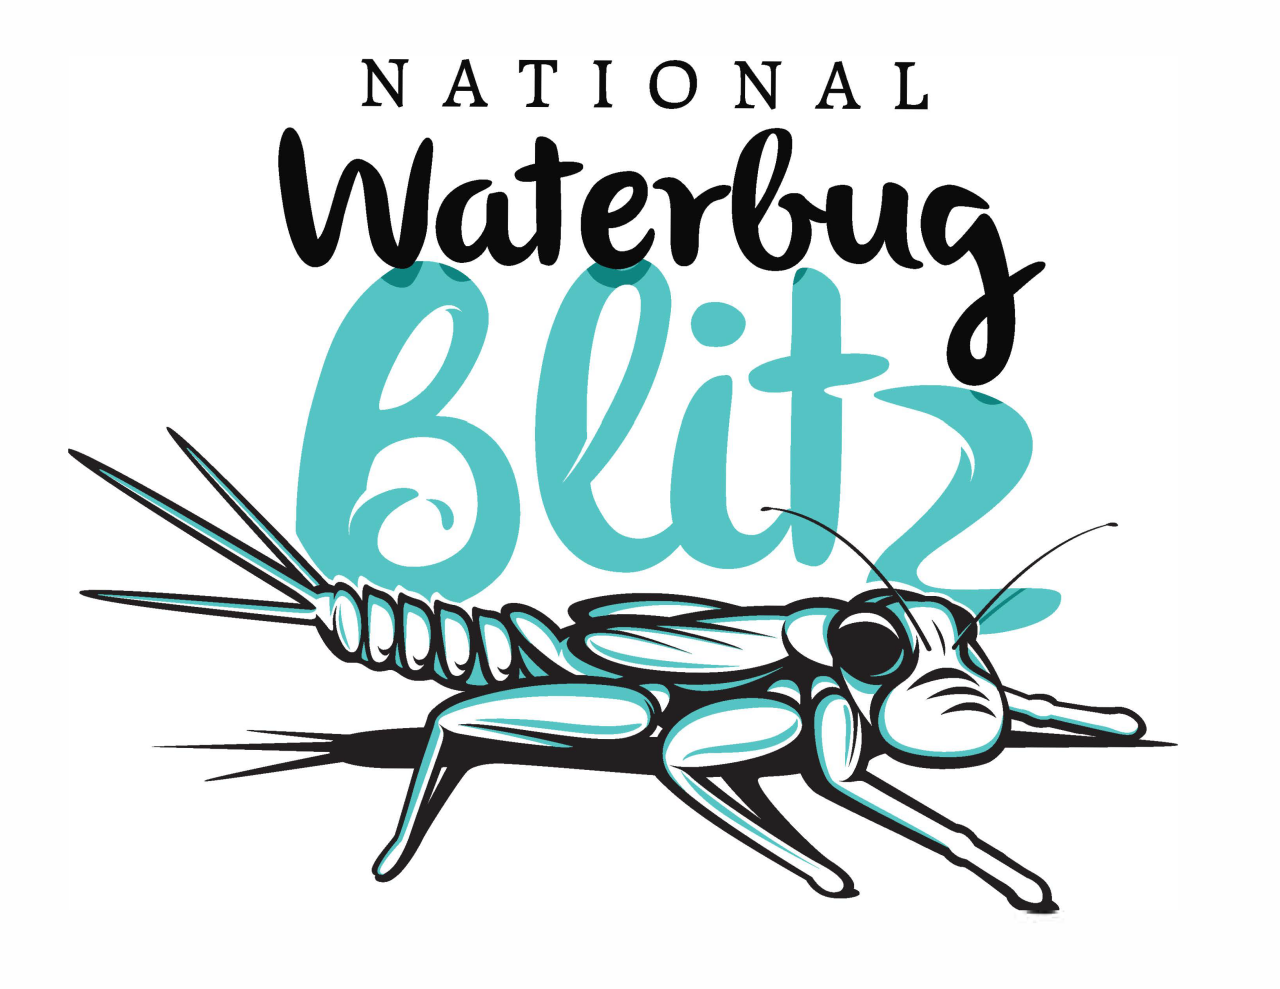 National waterbug blitz logo, words and drawing of a waterbug.